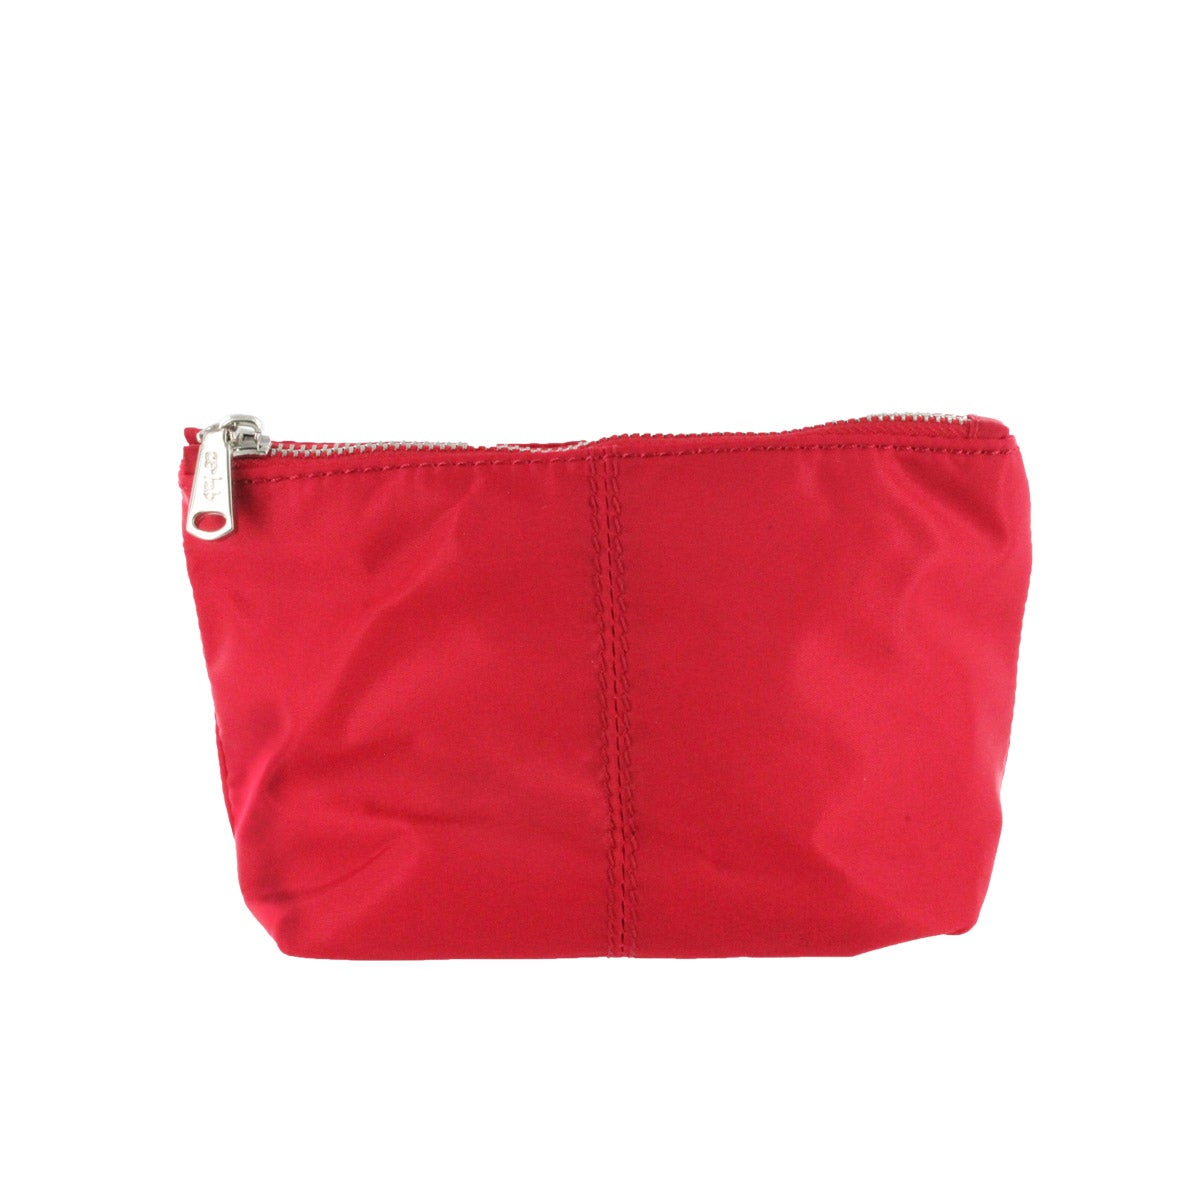 Lds Cosmetics & Such red cosmetic bag